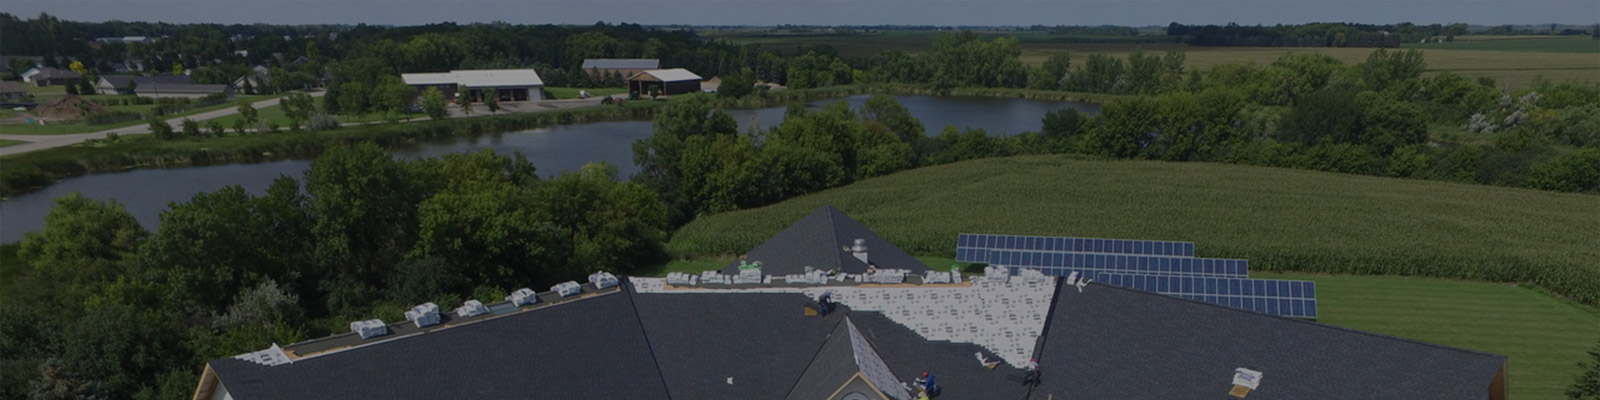 Commercial Roofing Lakeville MN